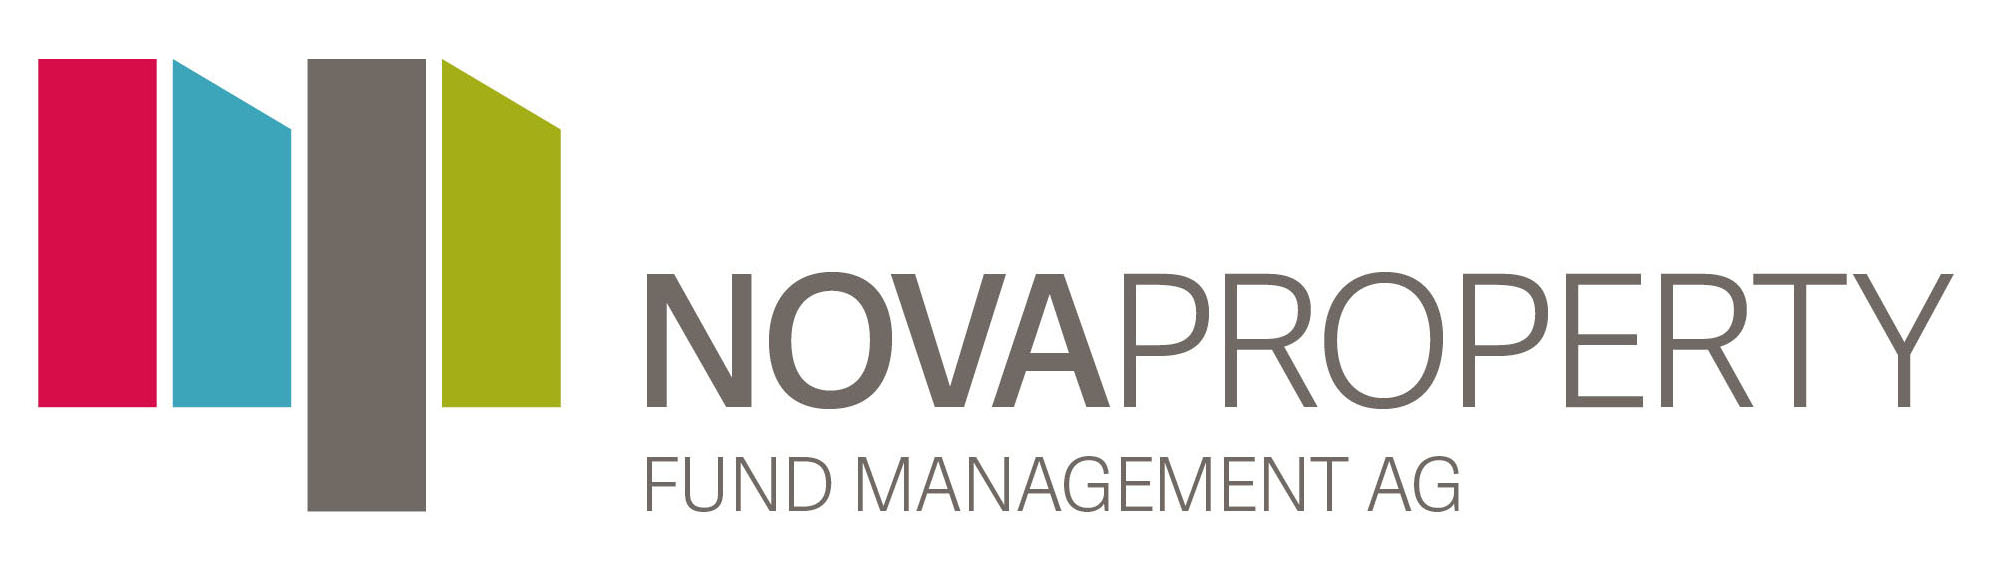 Logo Nova Property Fund Management AG